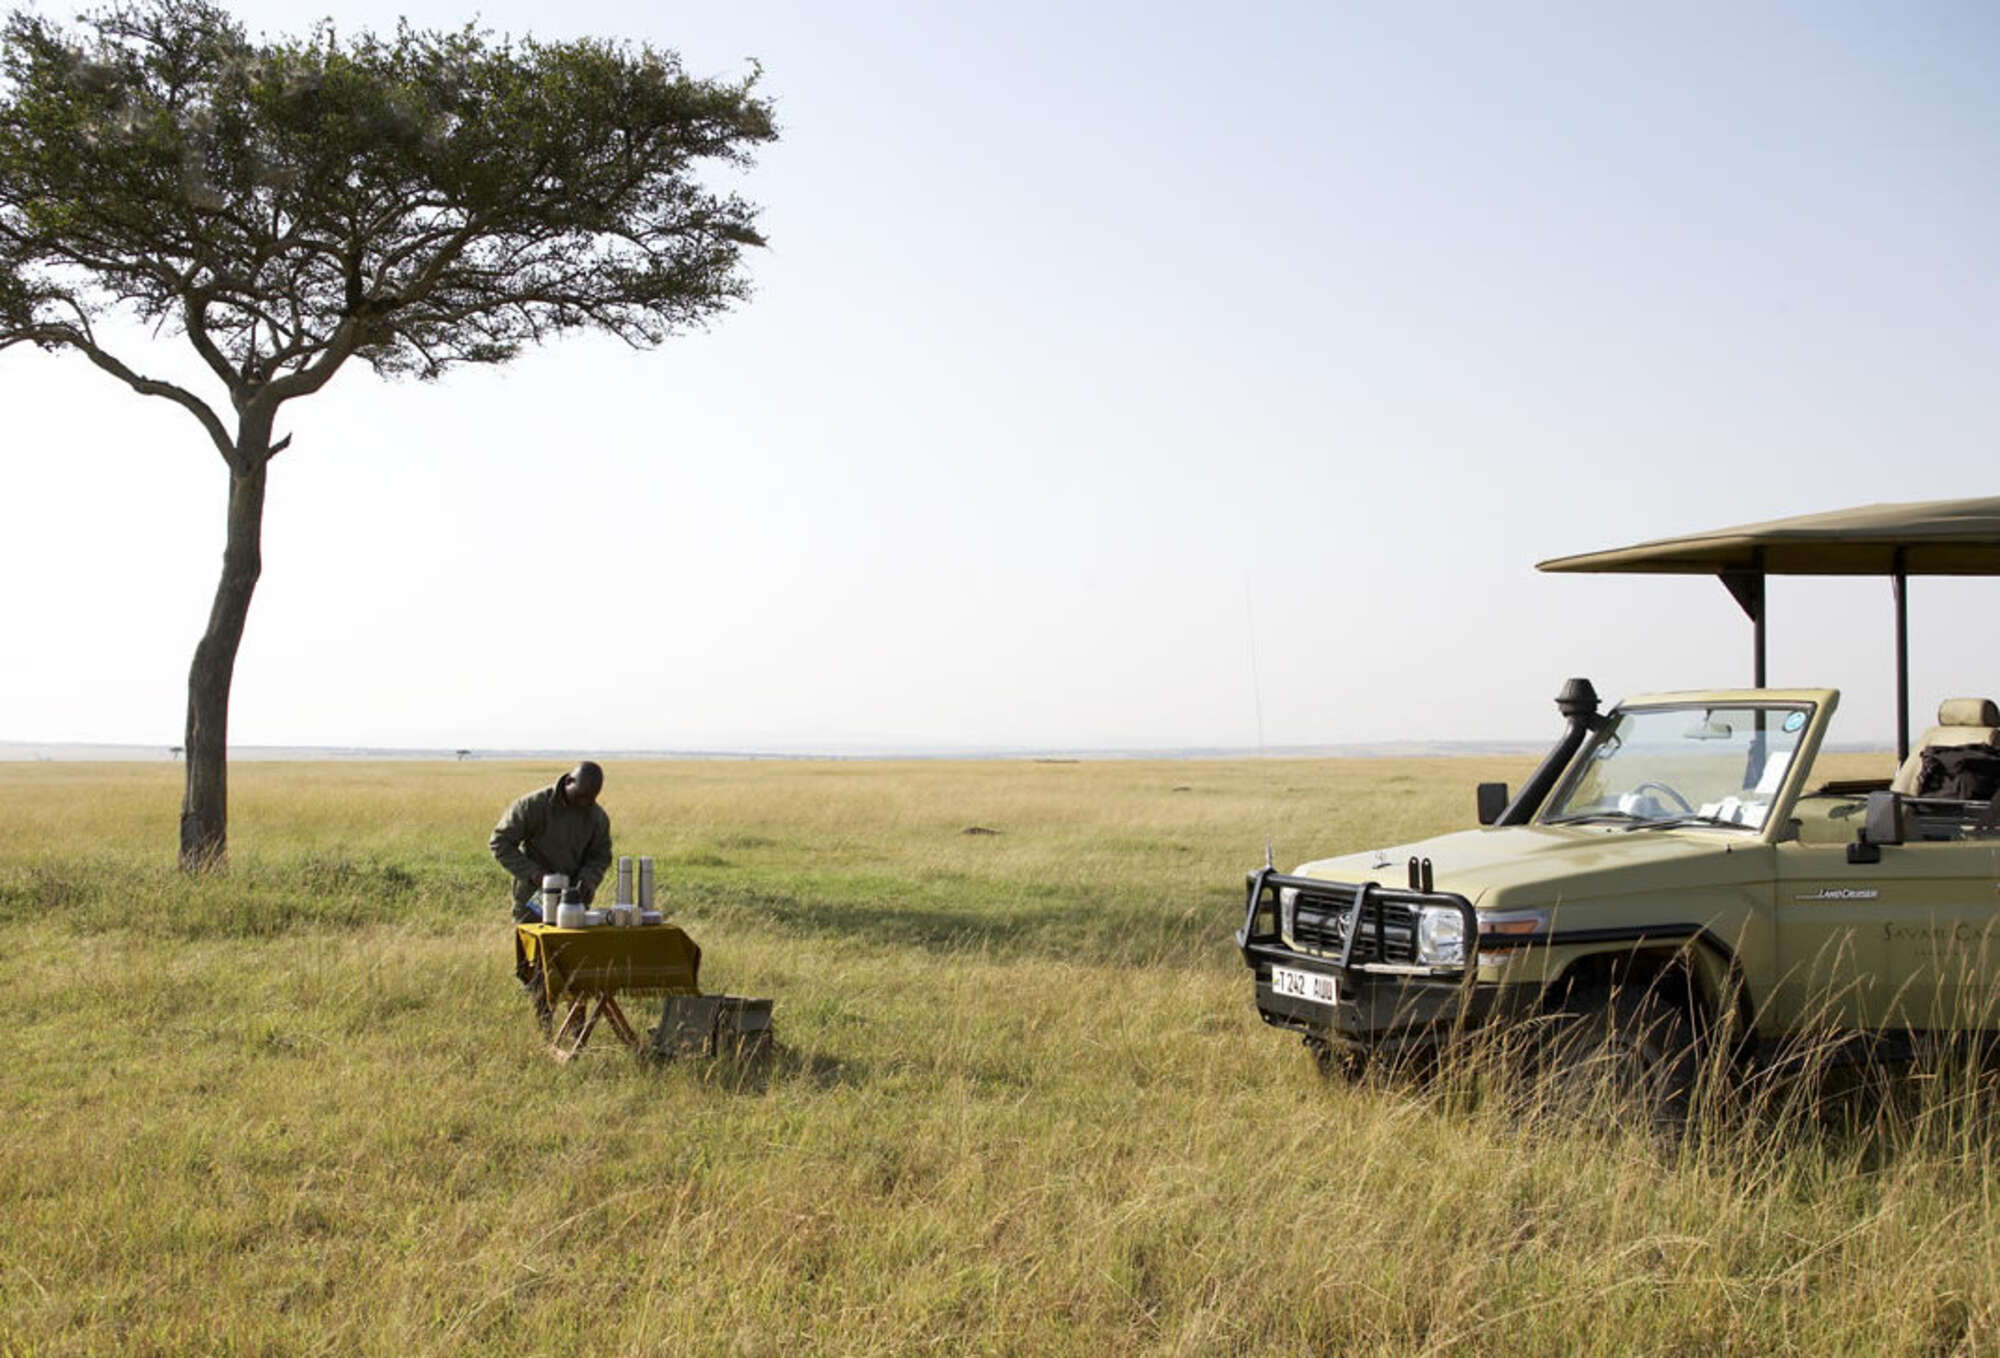 Flufftail private guided safari with 4WD to northern Tanzania including Lake Manyara National Park, The Ngorongoro Crater and the Serengeti National Park.